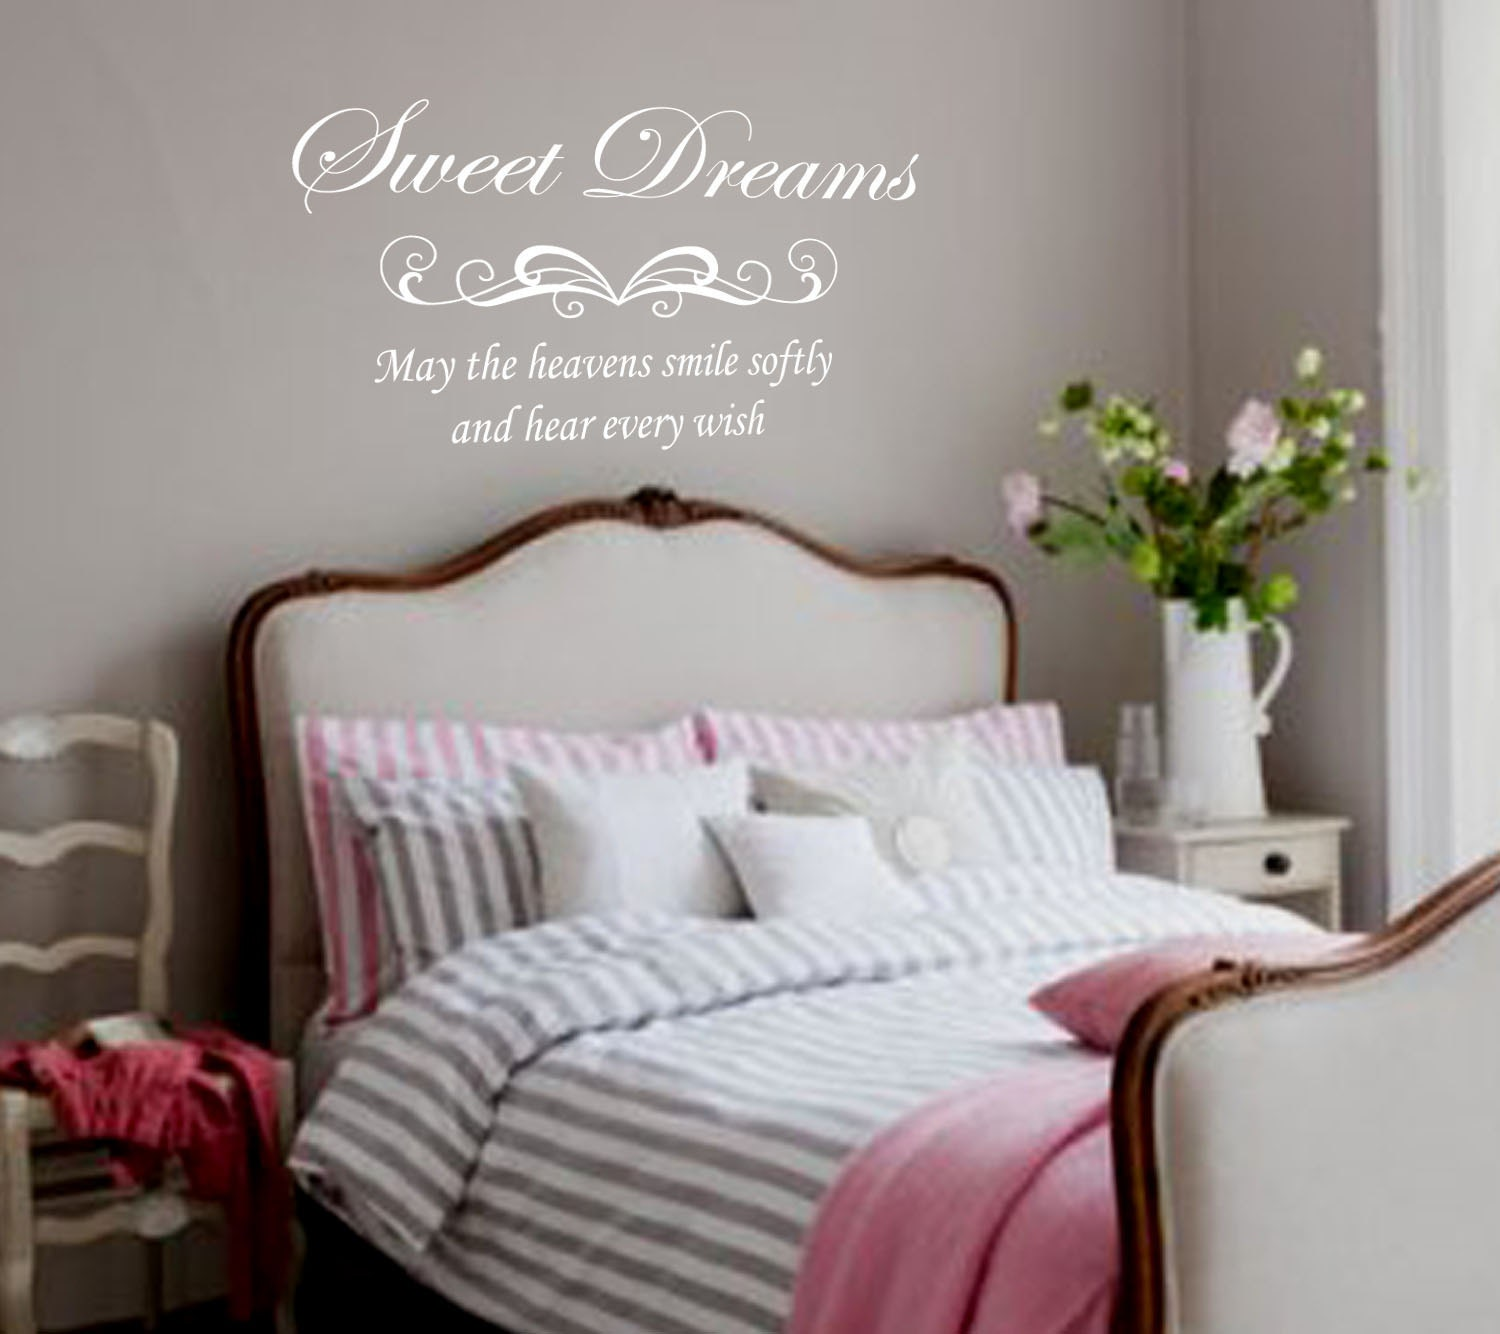 Bedroom wall decal sweet dreams removable vinyl by stixdesign for Bedroom wall decals